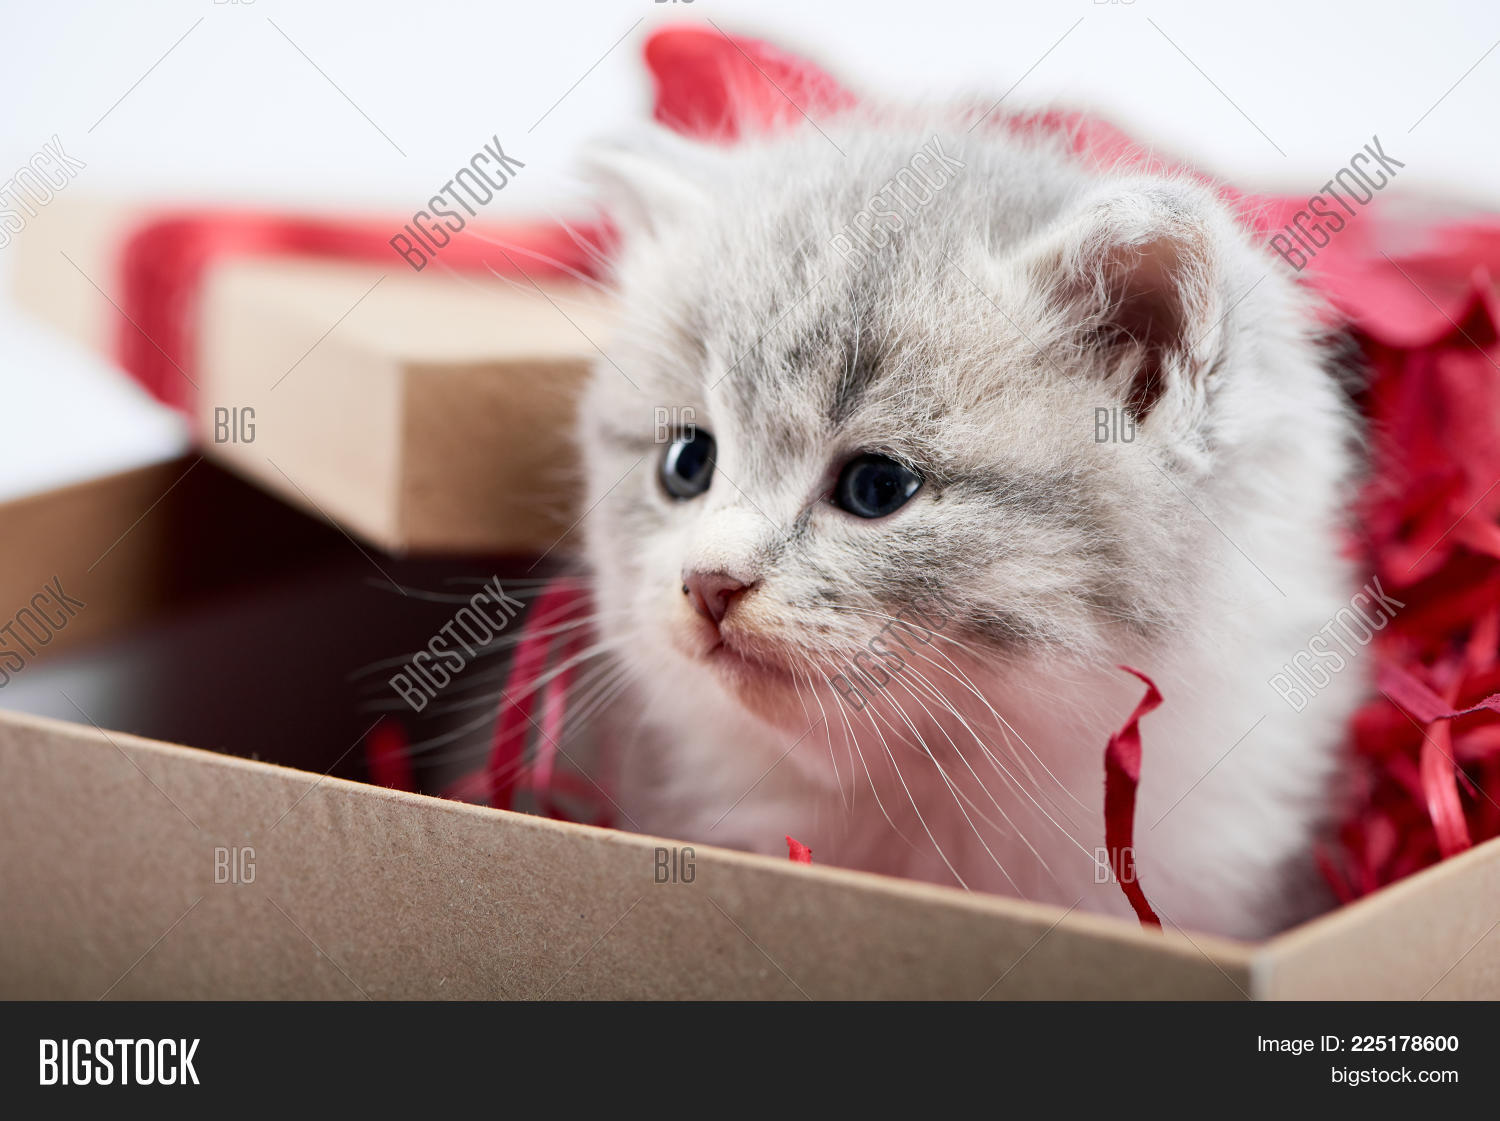 Closeup Of Little Cute Fluffy Grey Kitten Sitting In Decorated Cardboard Borthday Box As Present For